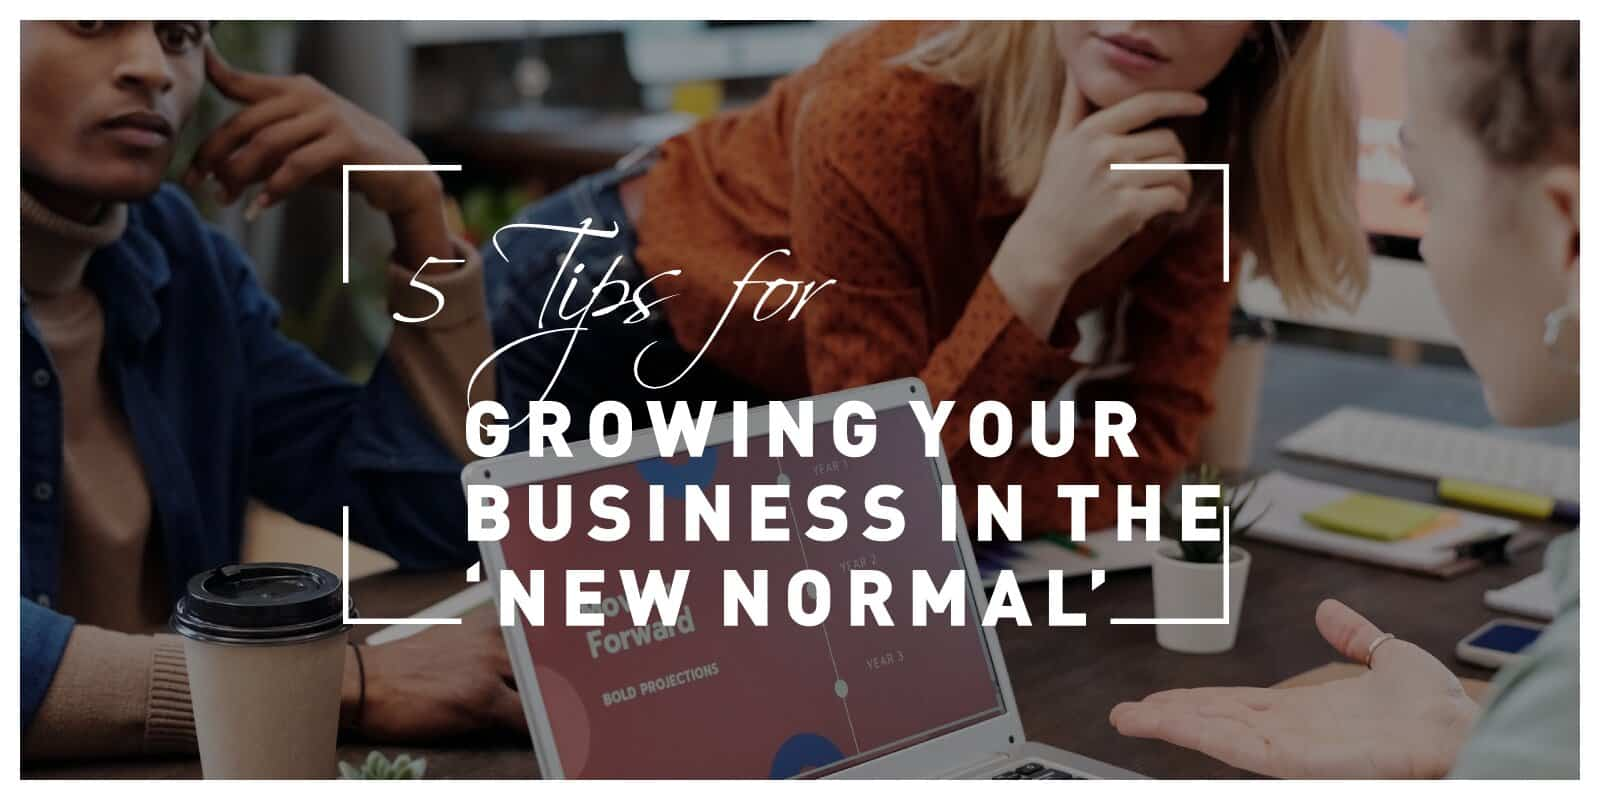 5 Tips for Growing Your Business in the 'New Normal'